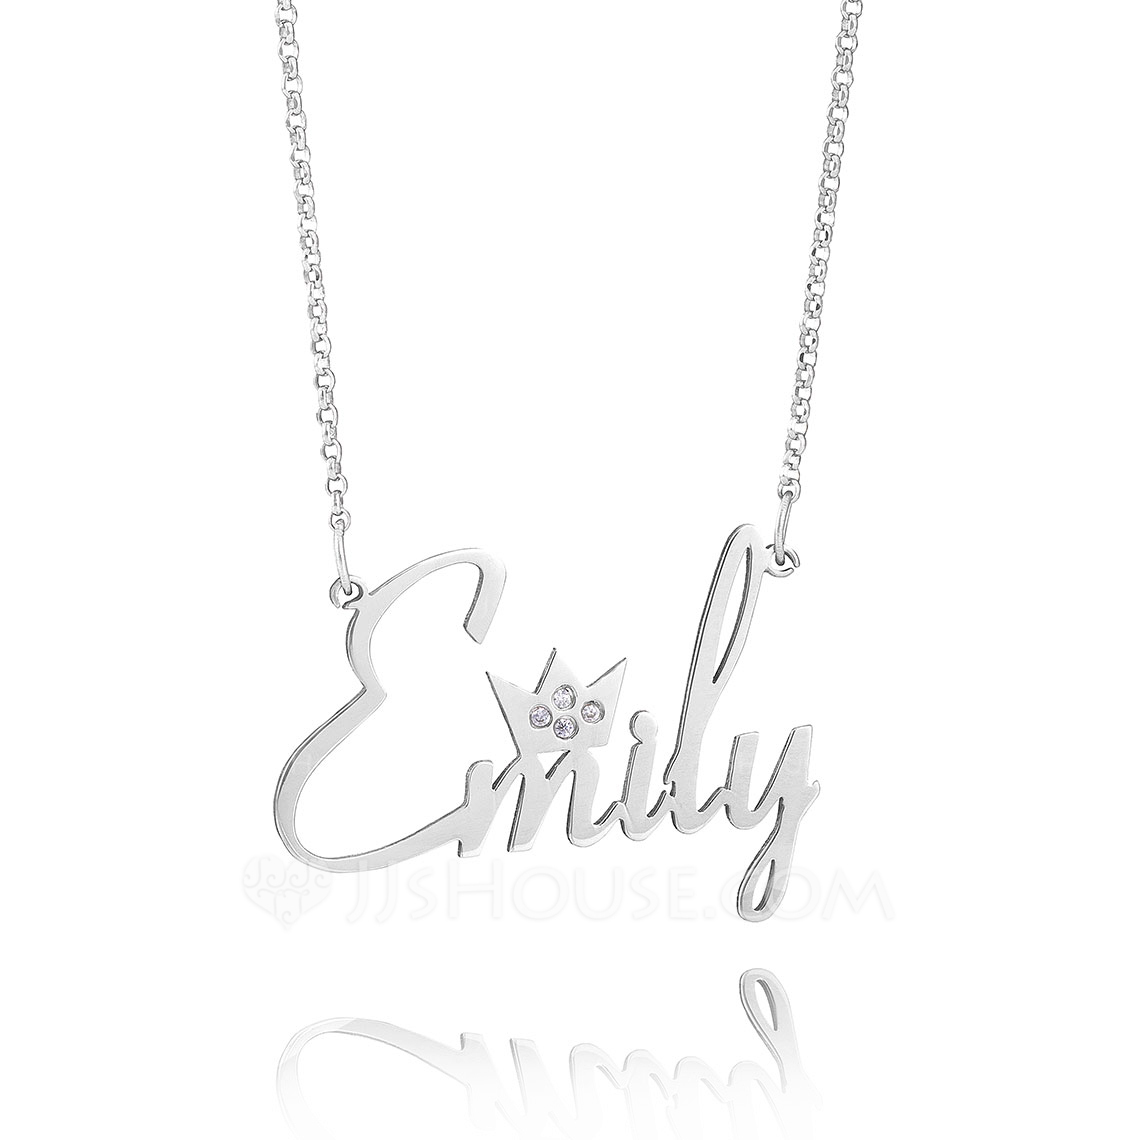 Custom Sterling Silver Name Necklace Nameplate - Birthday Gifts Mother's Day Gifts